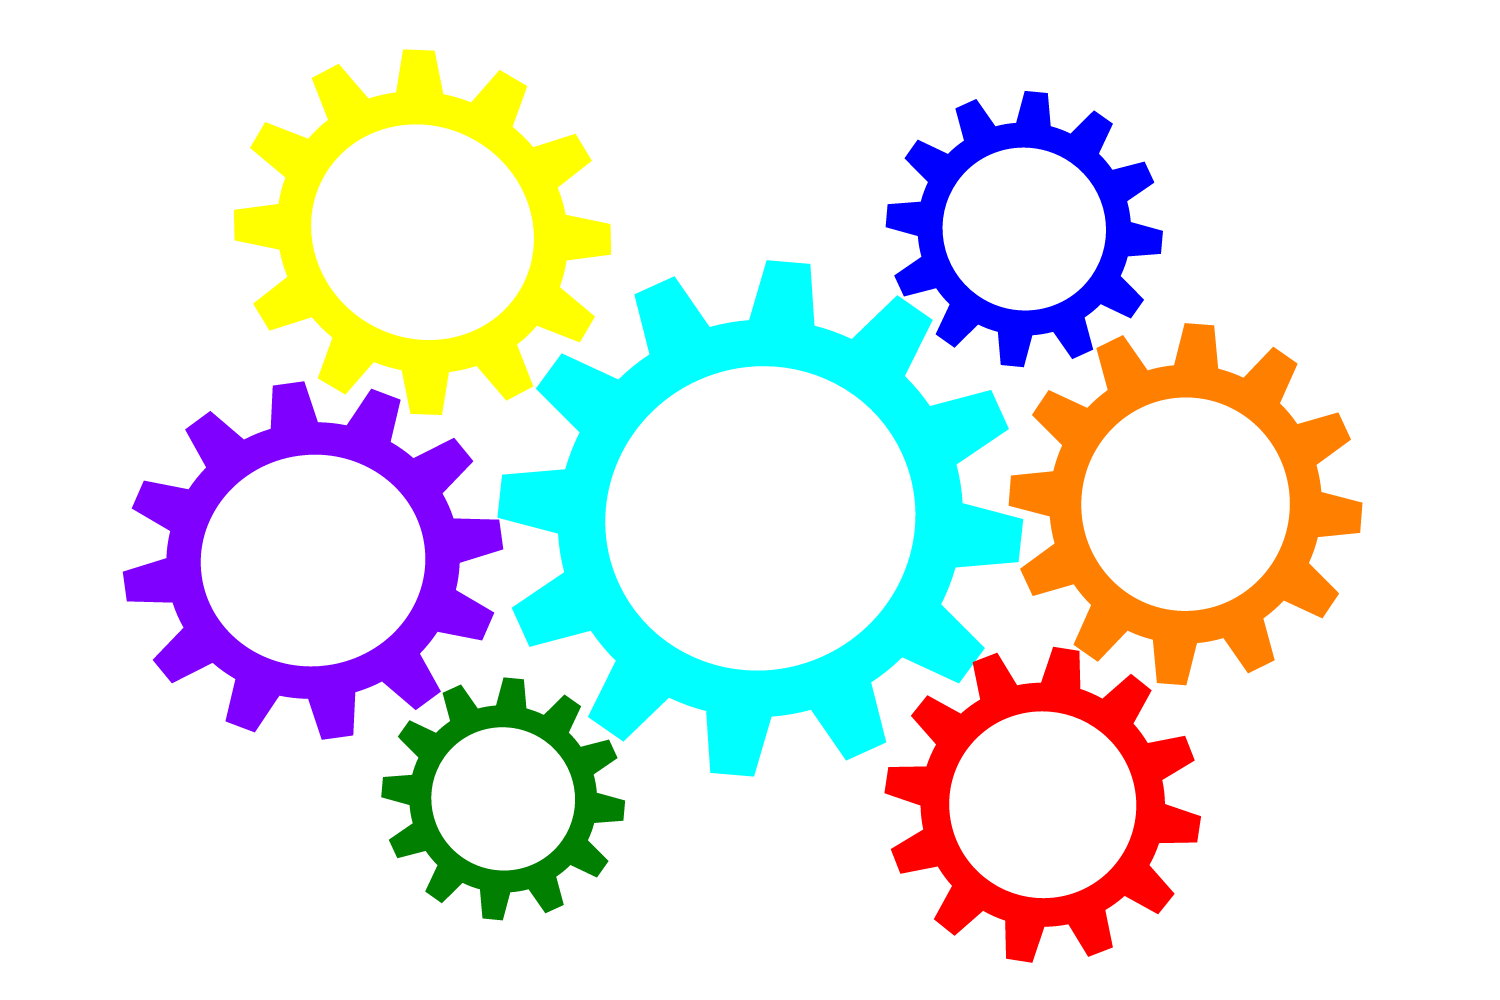 Gears clipart clock gear Emaze clipart Animated gears collection